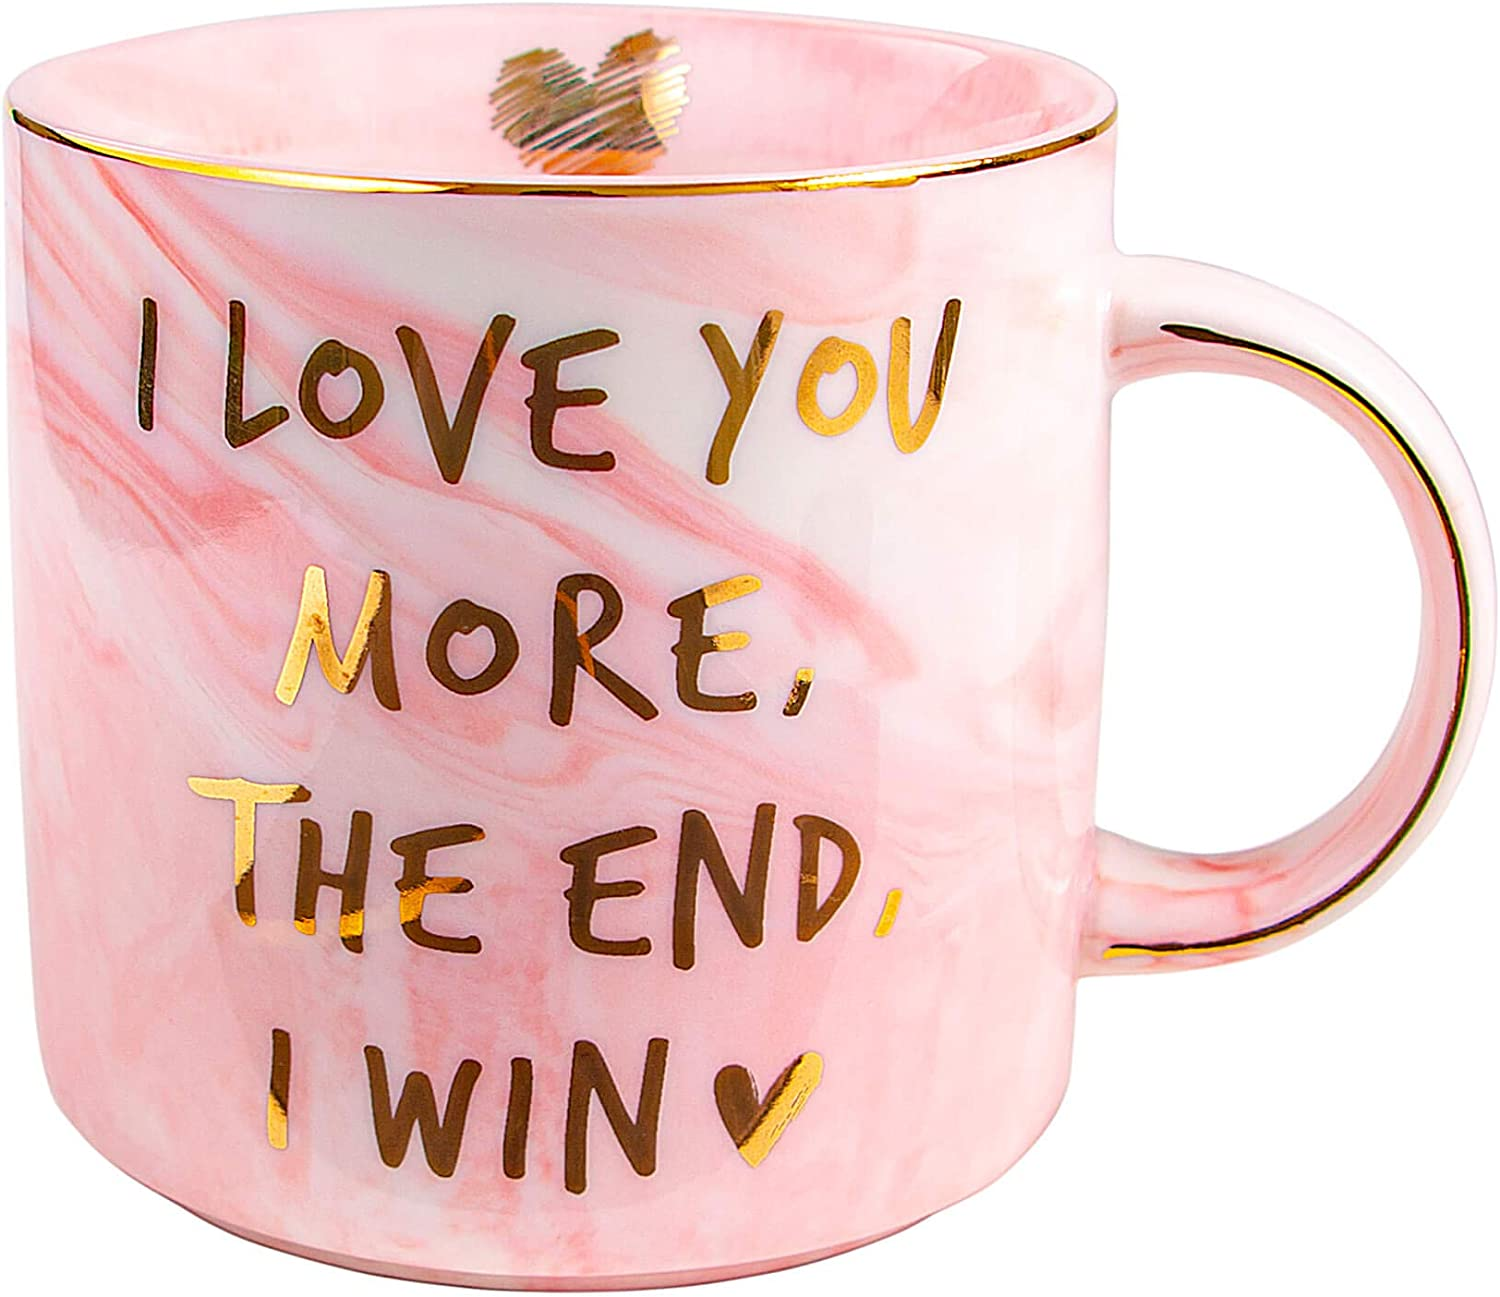 Vilight Gifts for Women Girlfriend Wife - I Love You More The End I Win Mug for Her - Marble Pink Coffee Cup 11.5 Oz